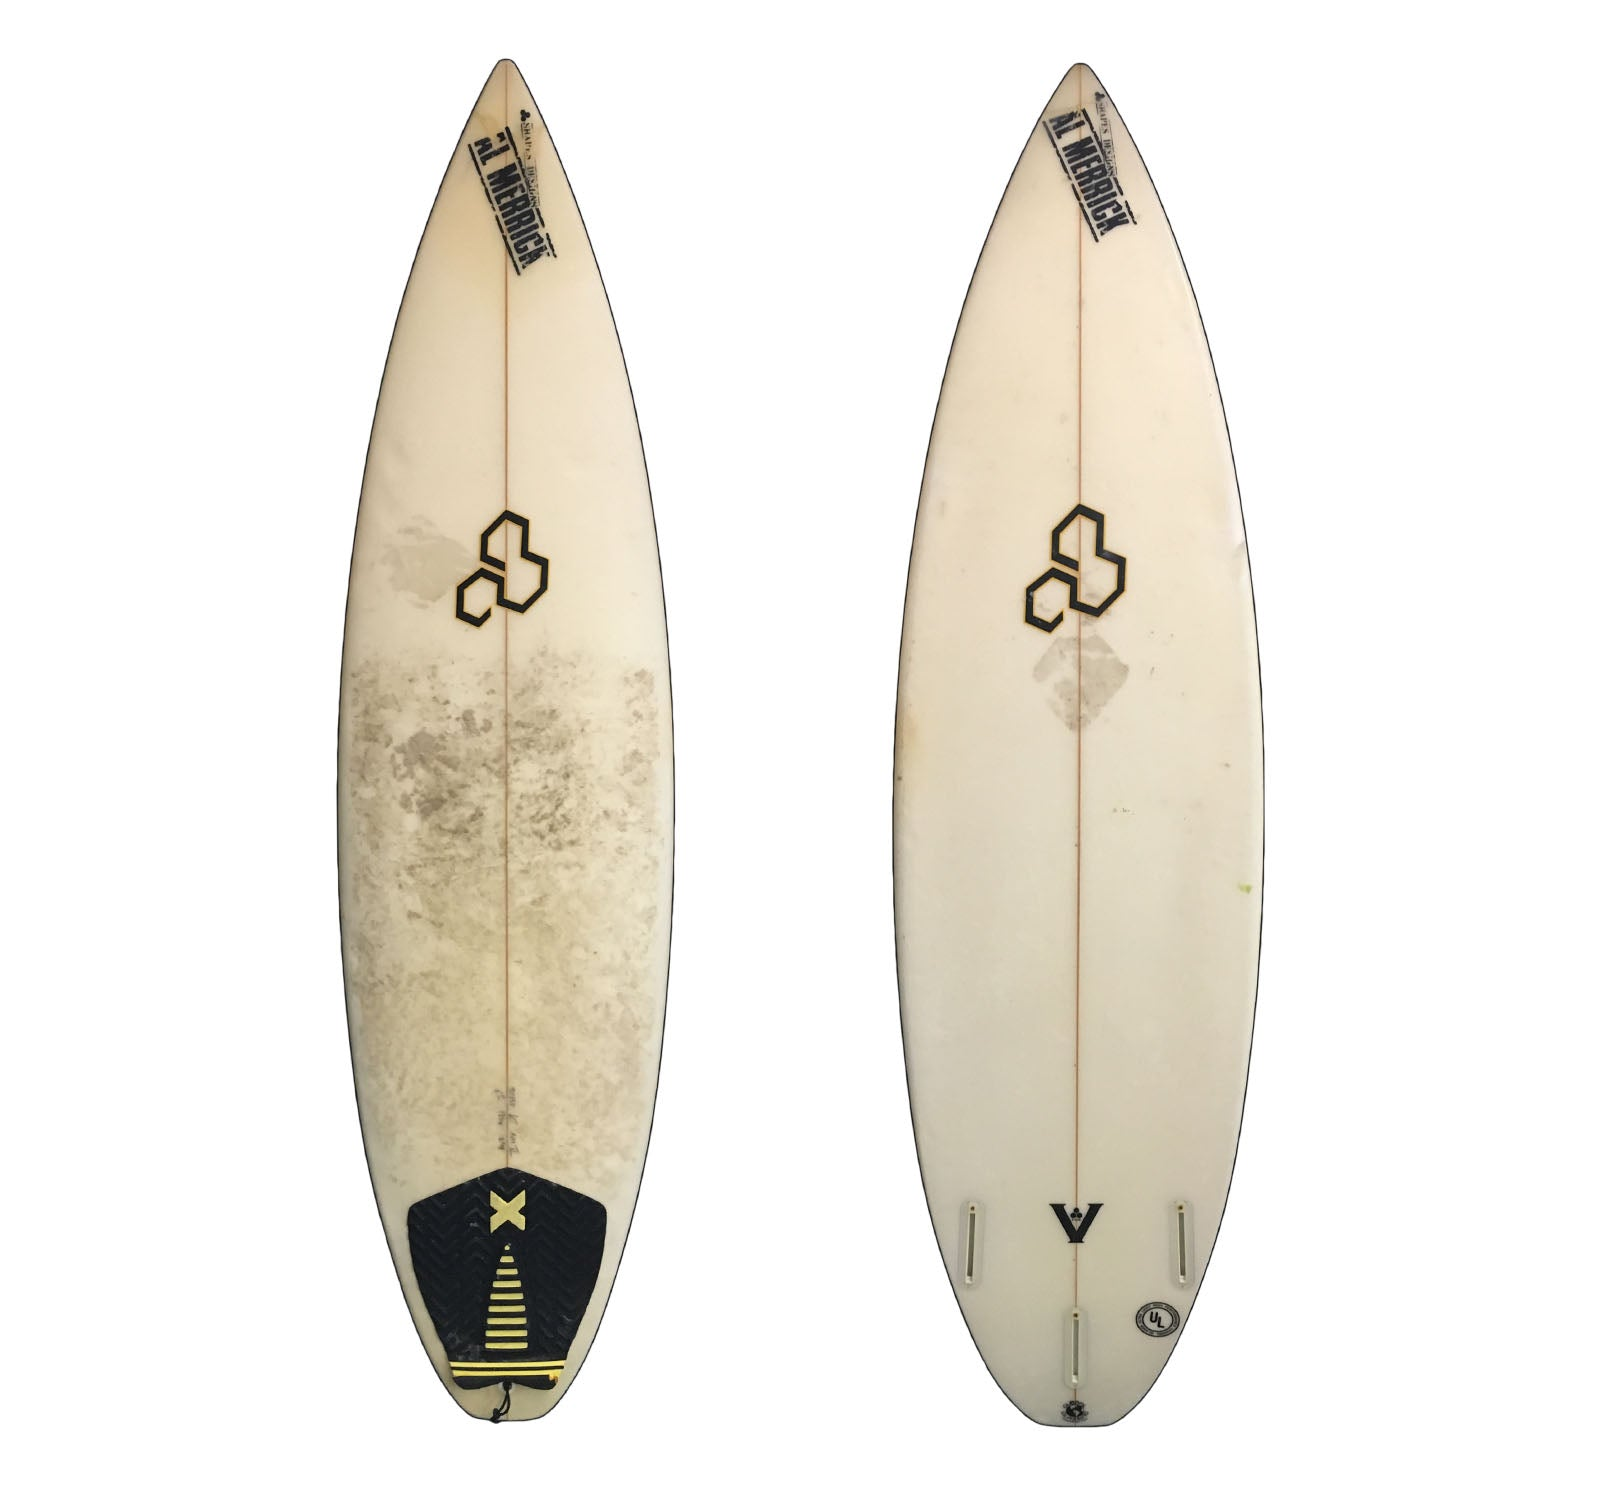 Channel Islands Five 6'0 Used Surfboard